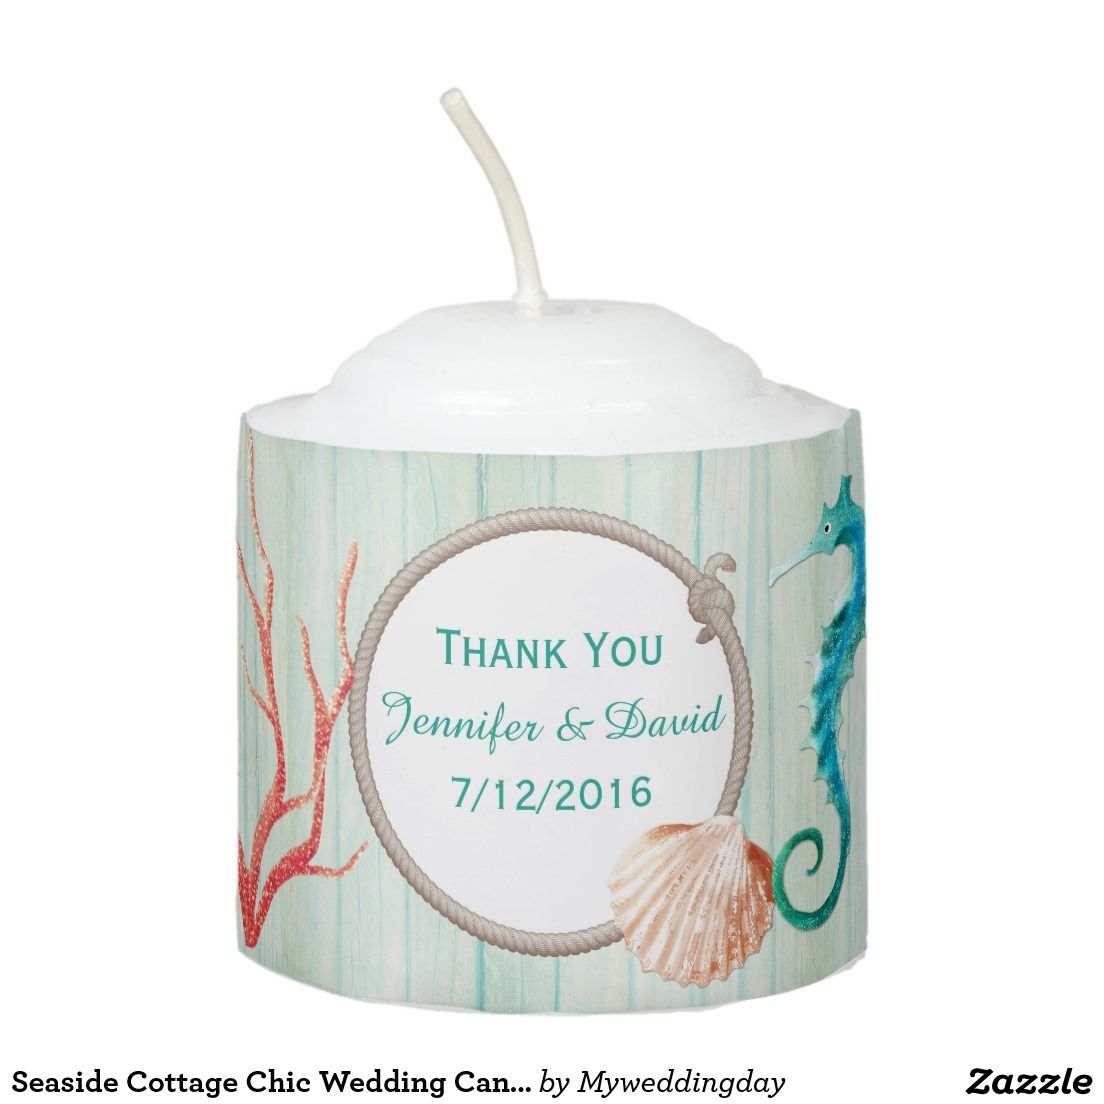 Seaside Cottage Chic Wedding Candle Favor